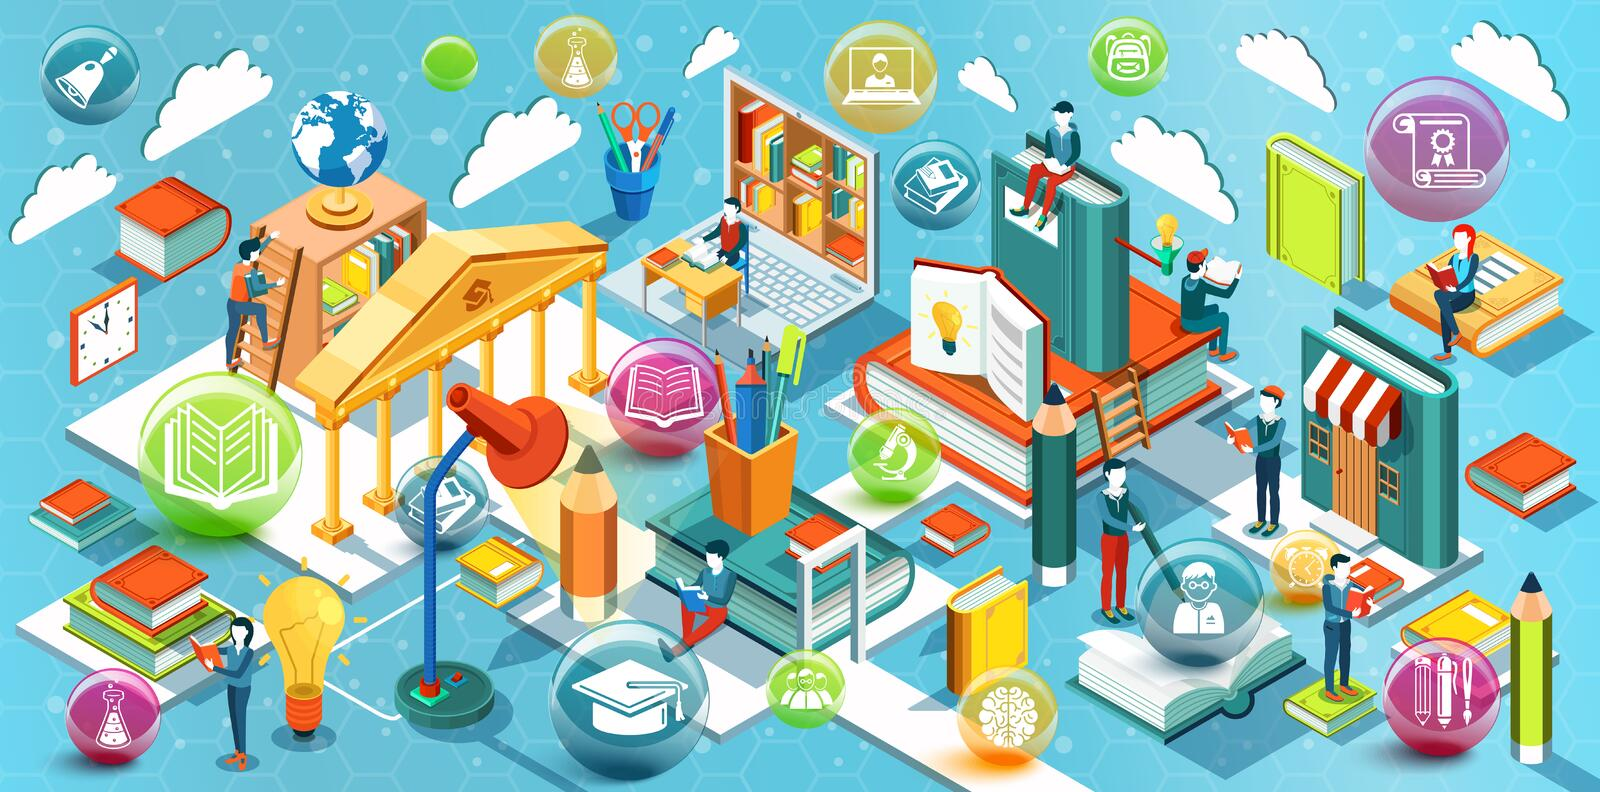 Online education Isometric flat design. The concept of reading books in the library and in the classroom. Learning process. Univer vector illustration